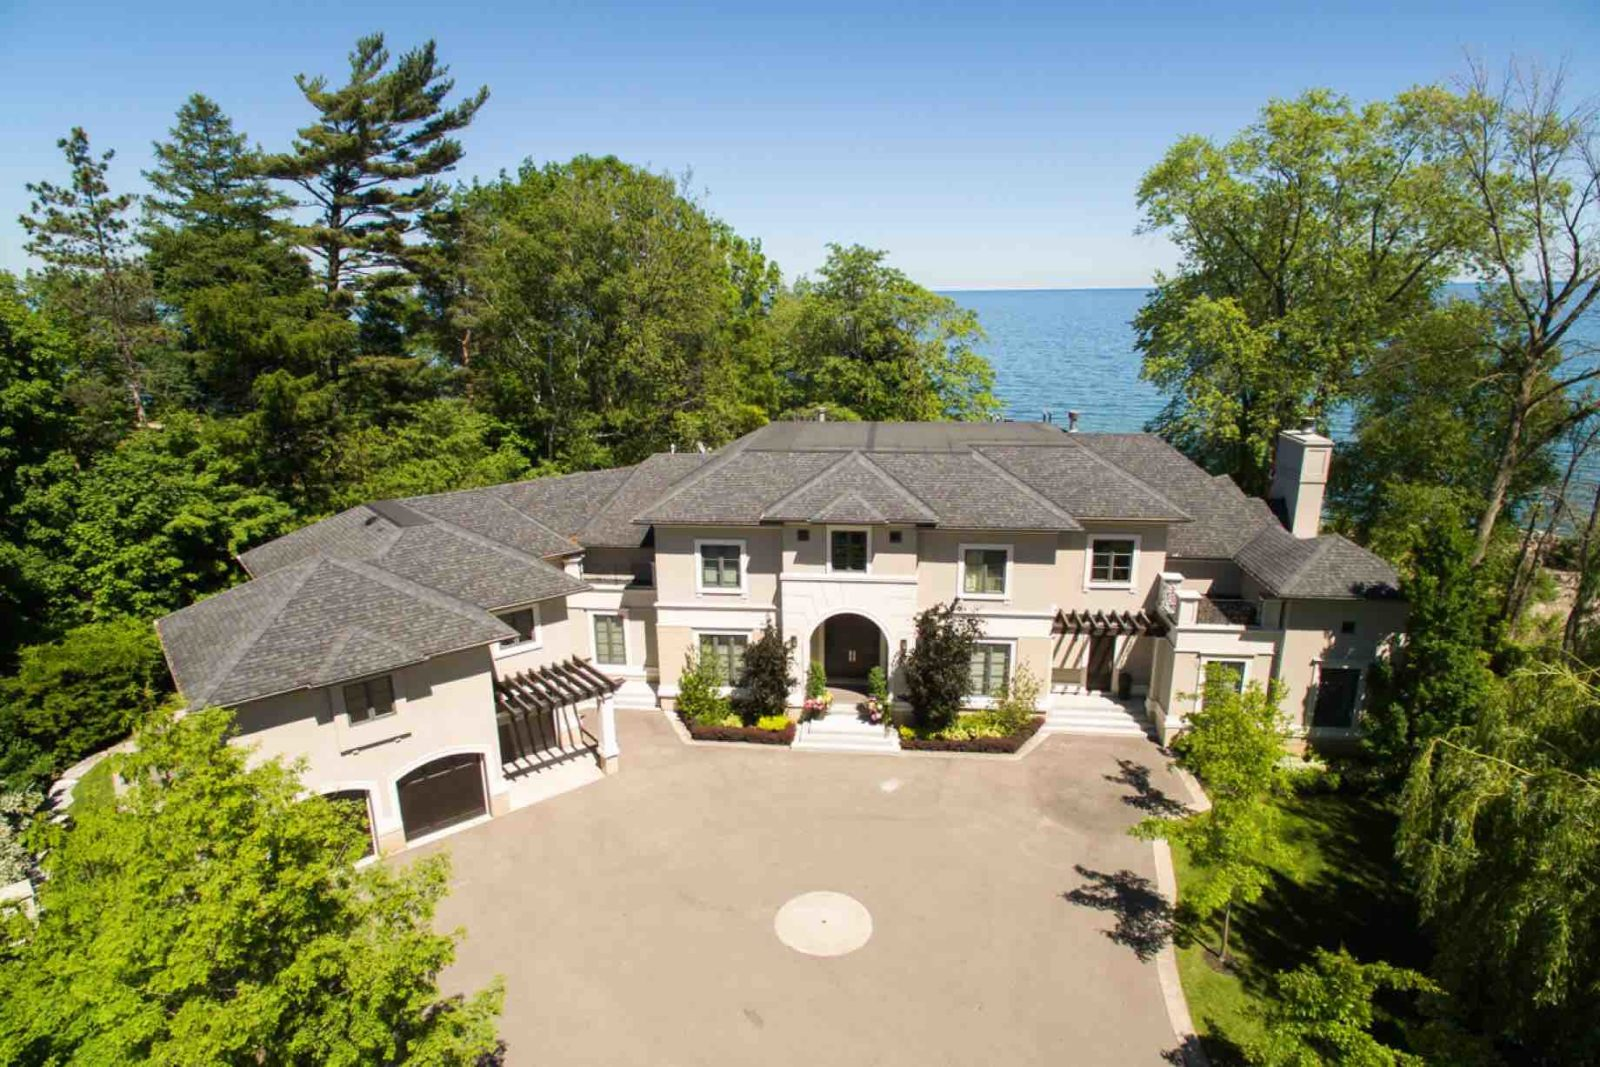 Luxury Lakefront Home exterior on Oakville Gold Coast of Lake Ontario